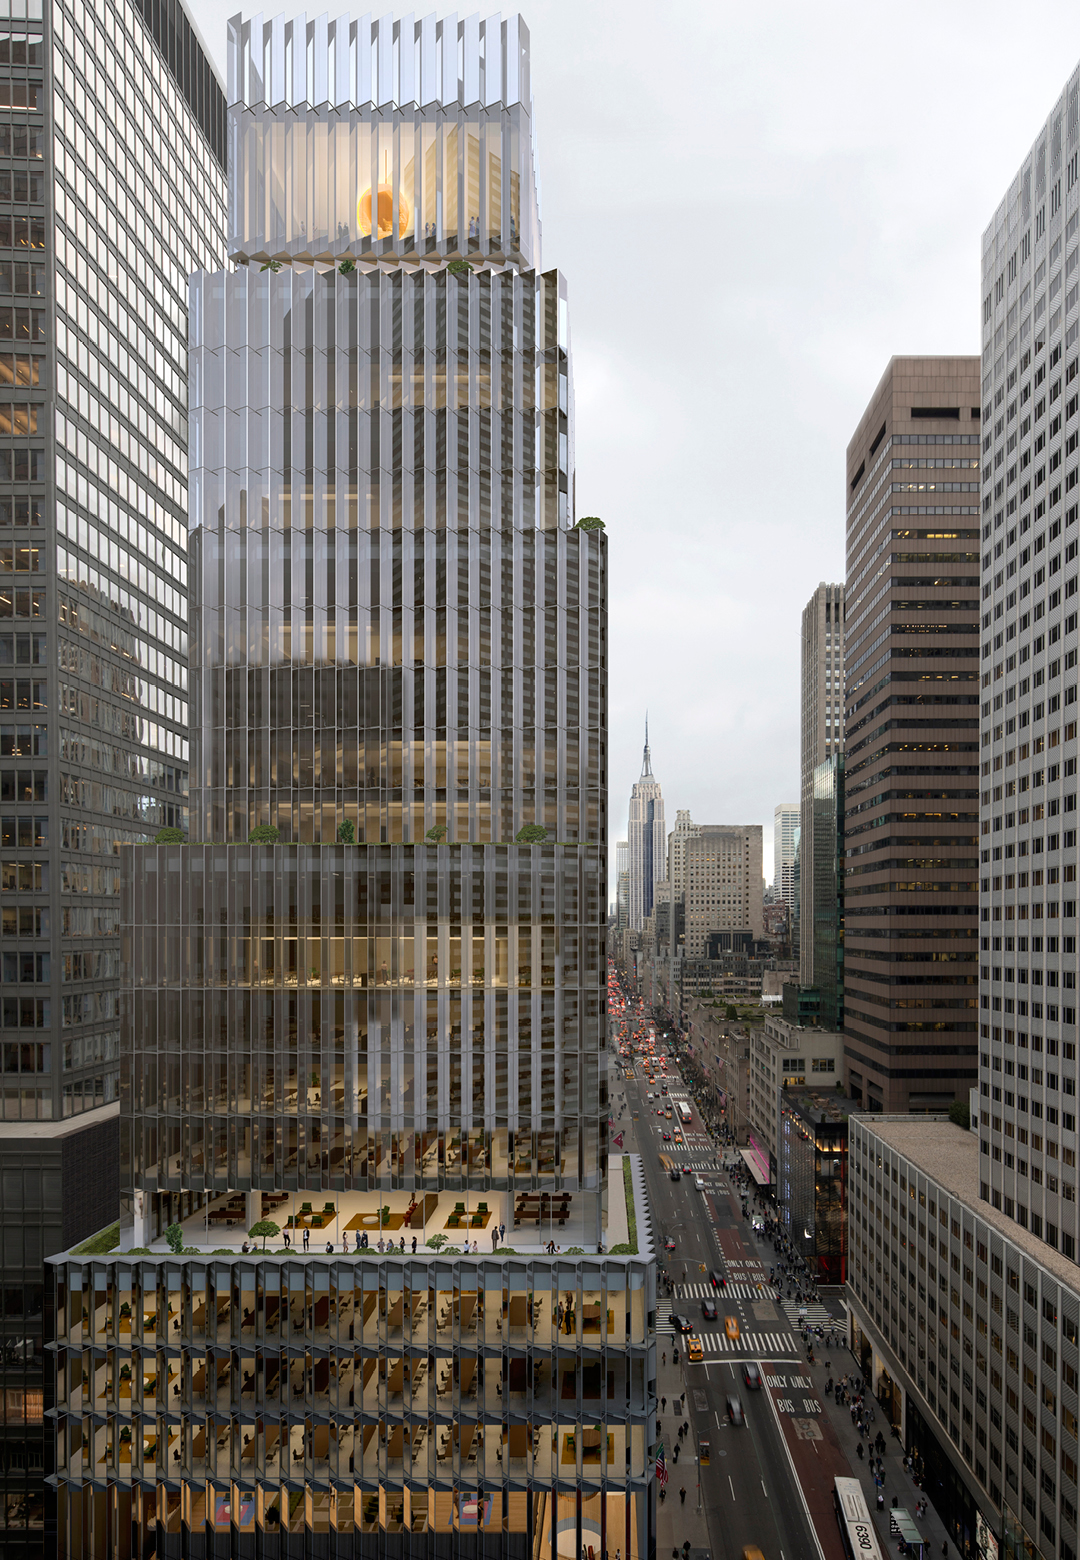 David Chipperfield Architects's design to build Rolex USA headquarters in New York| Rolex headquarters | David Chipperfield Architects | STIRworld